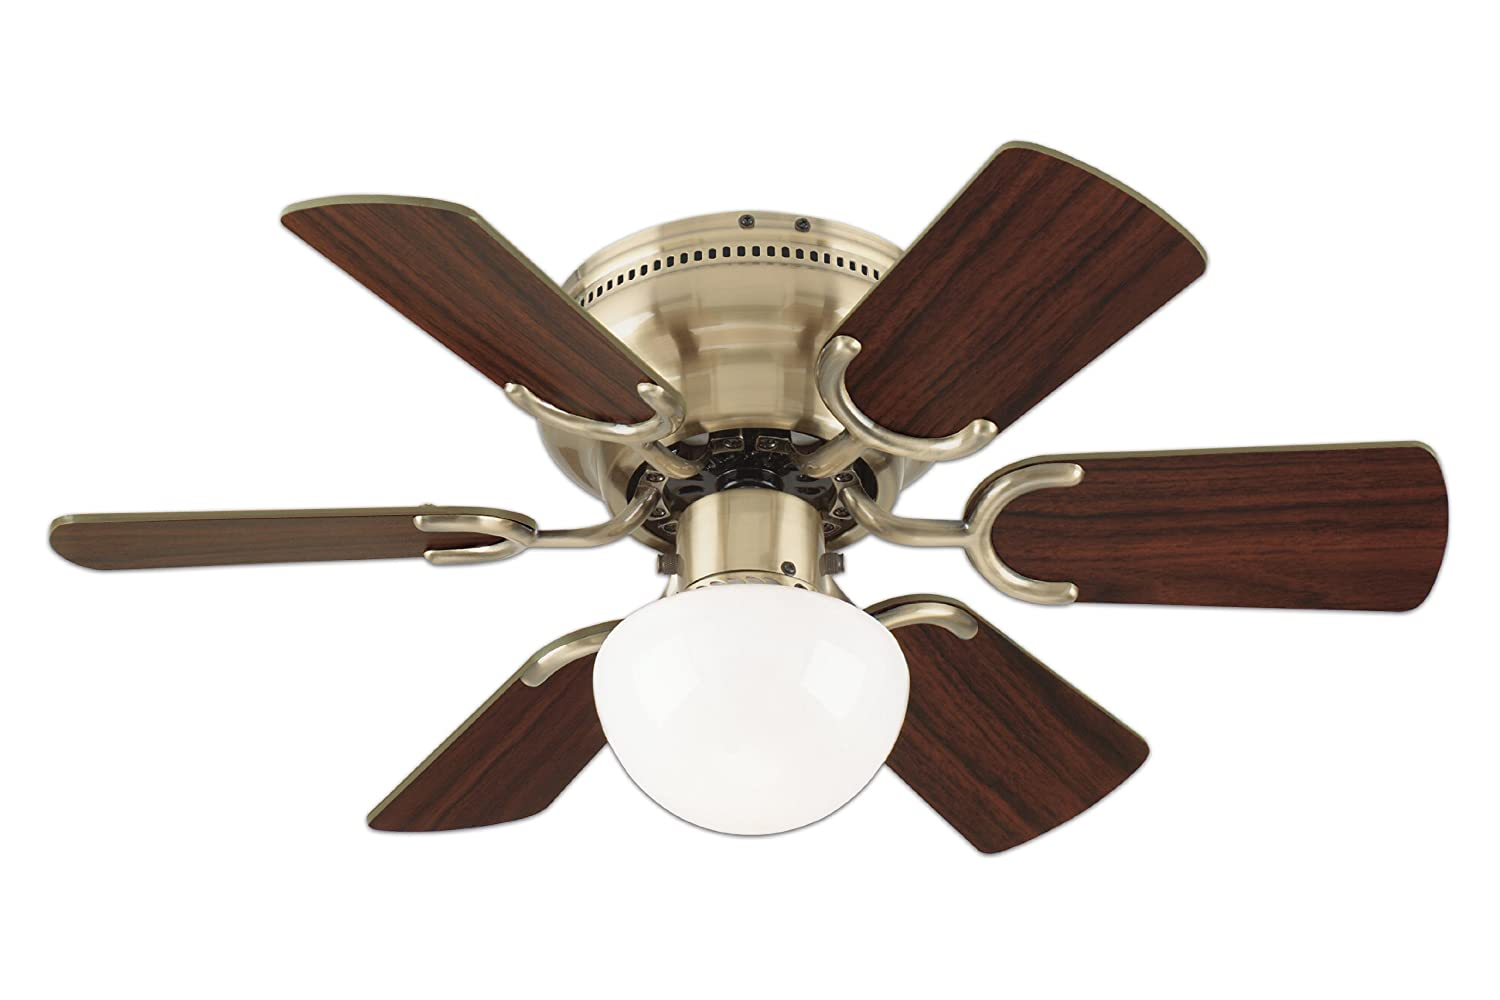 Westinghouse 78603 petite 6 blade 30 inch 3 speed hugger style westinghouse 78603 petite 6 blade 30 inch 3 speed hugger style ceiling fan with light antique brass amazon aloadofball Image collections